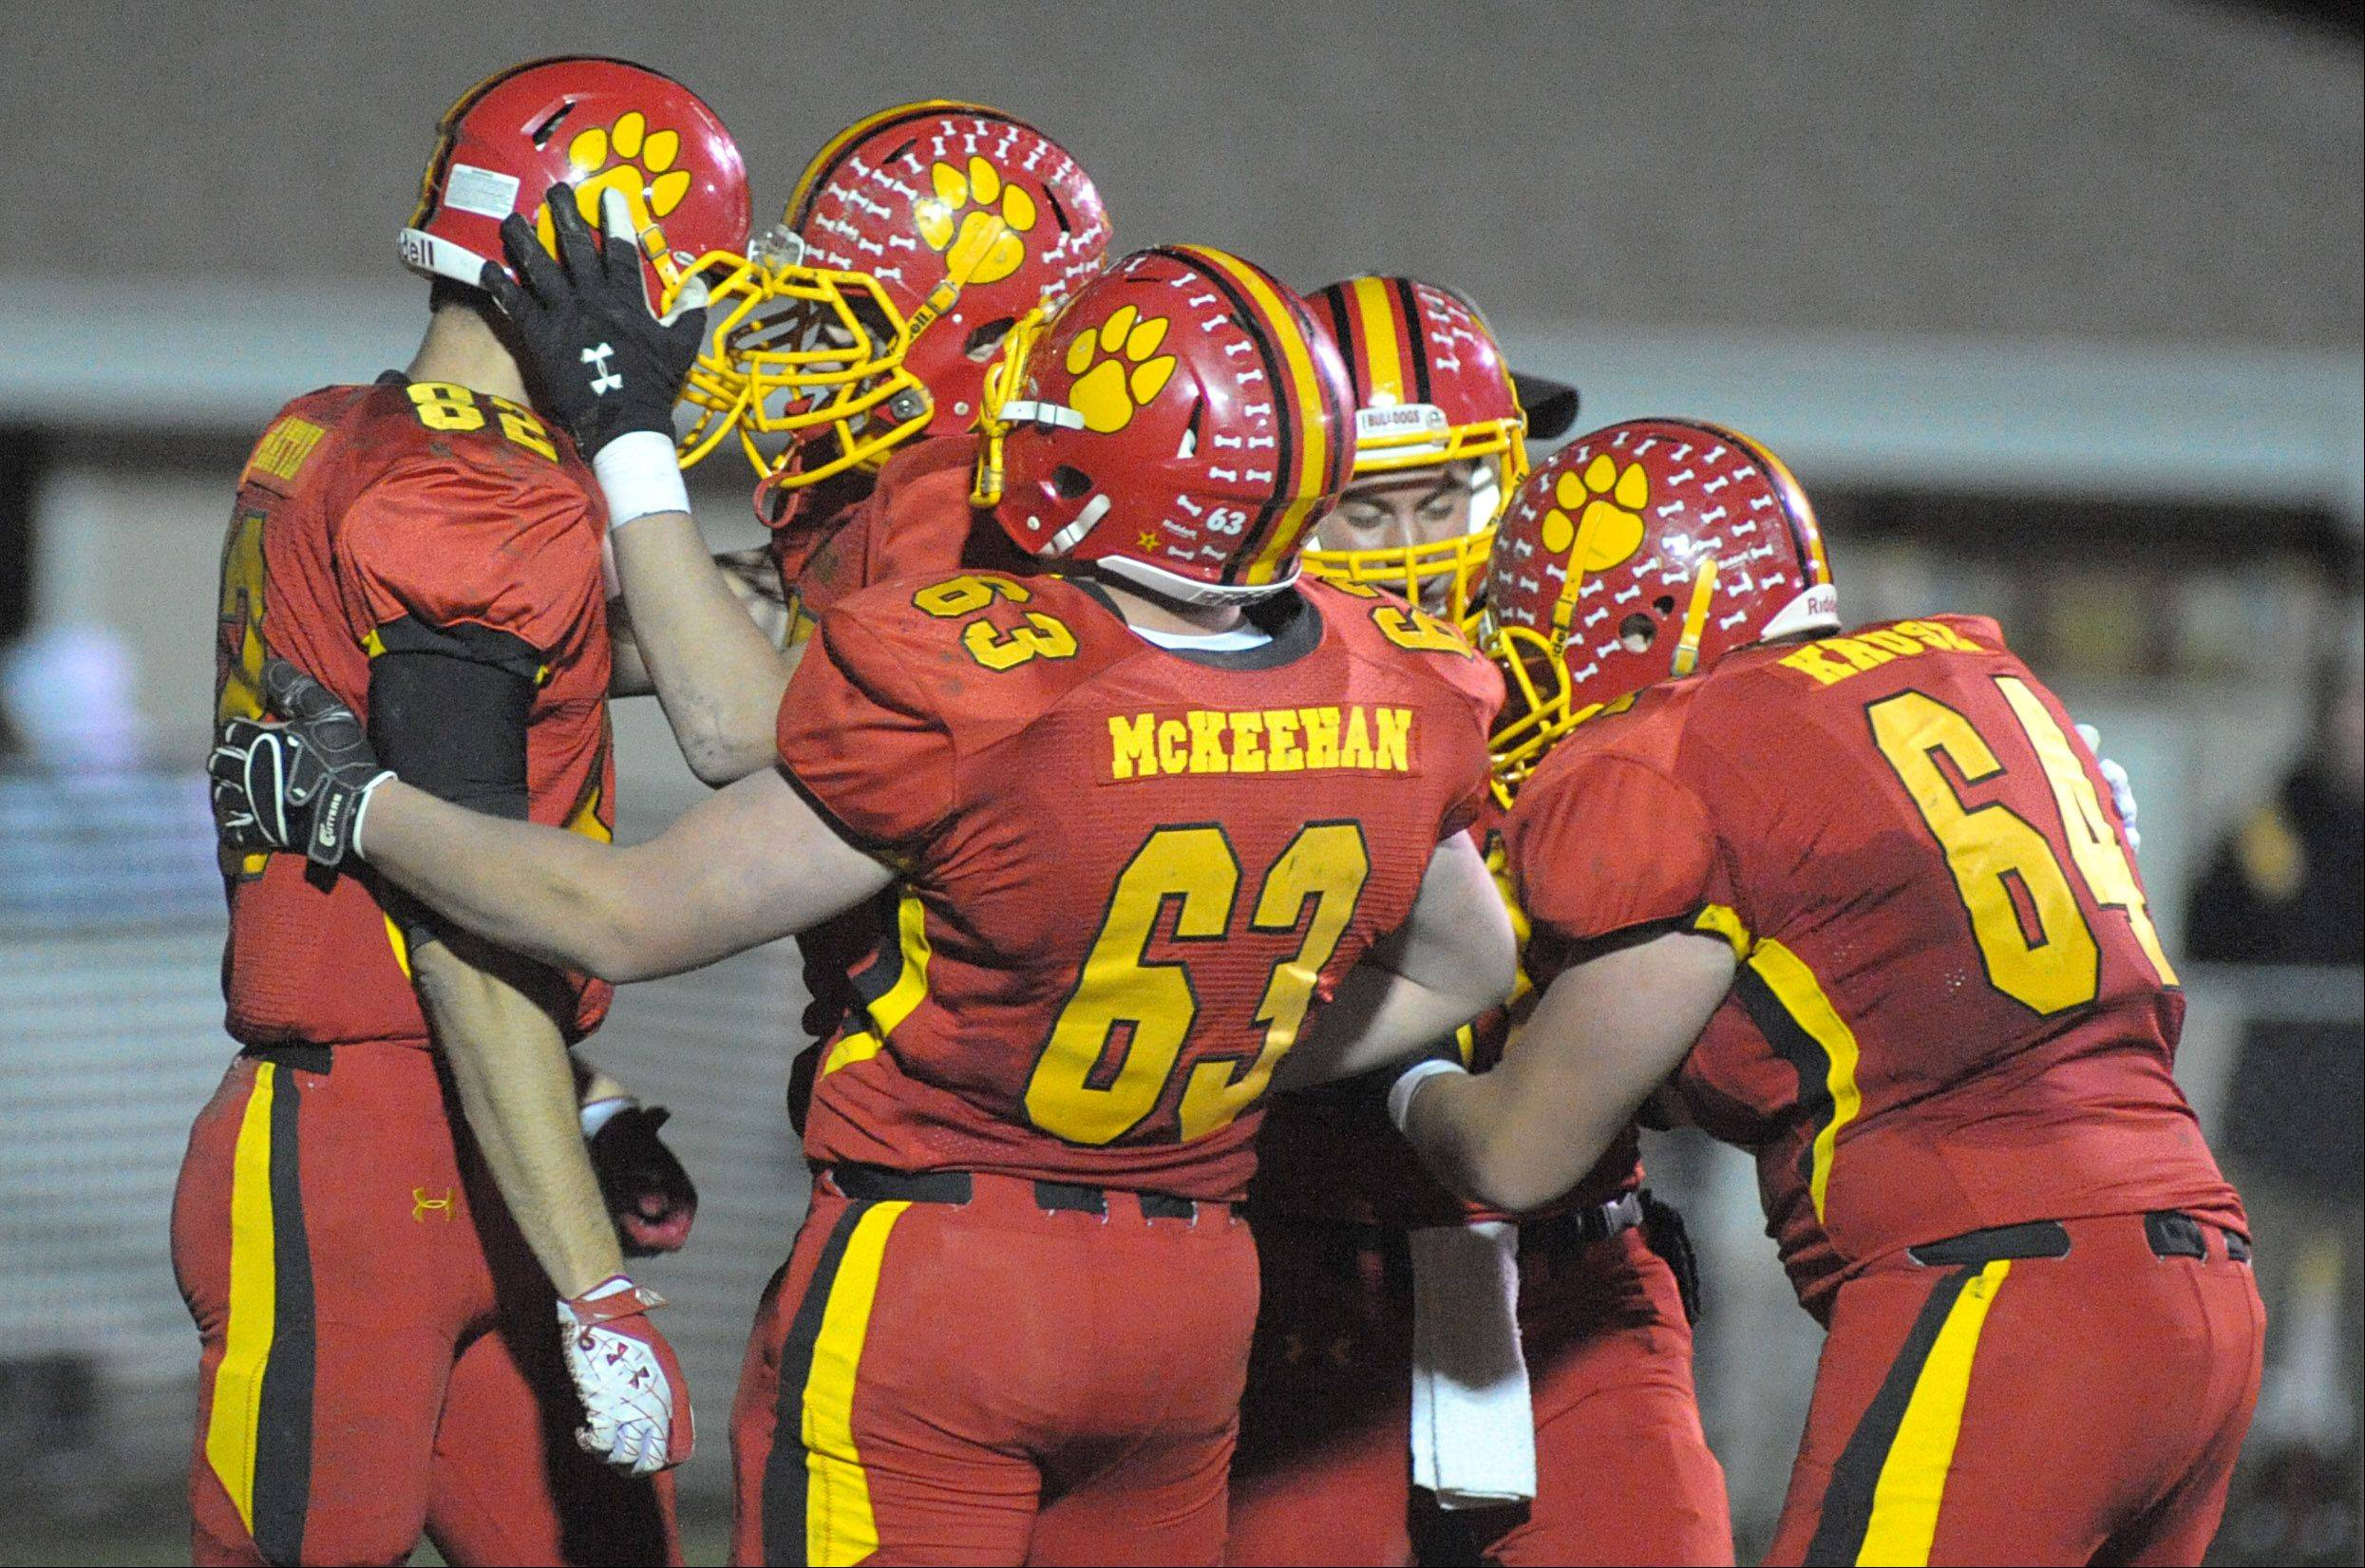 Batavia's Zachary Strittmatter is congratulated by Sebastian Vermaas and teammates after scoring a touchdown in the fourth quarter of playoff game on Friday, October 26.